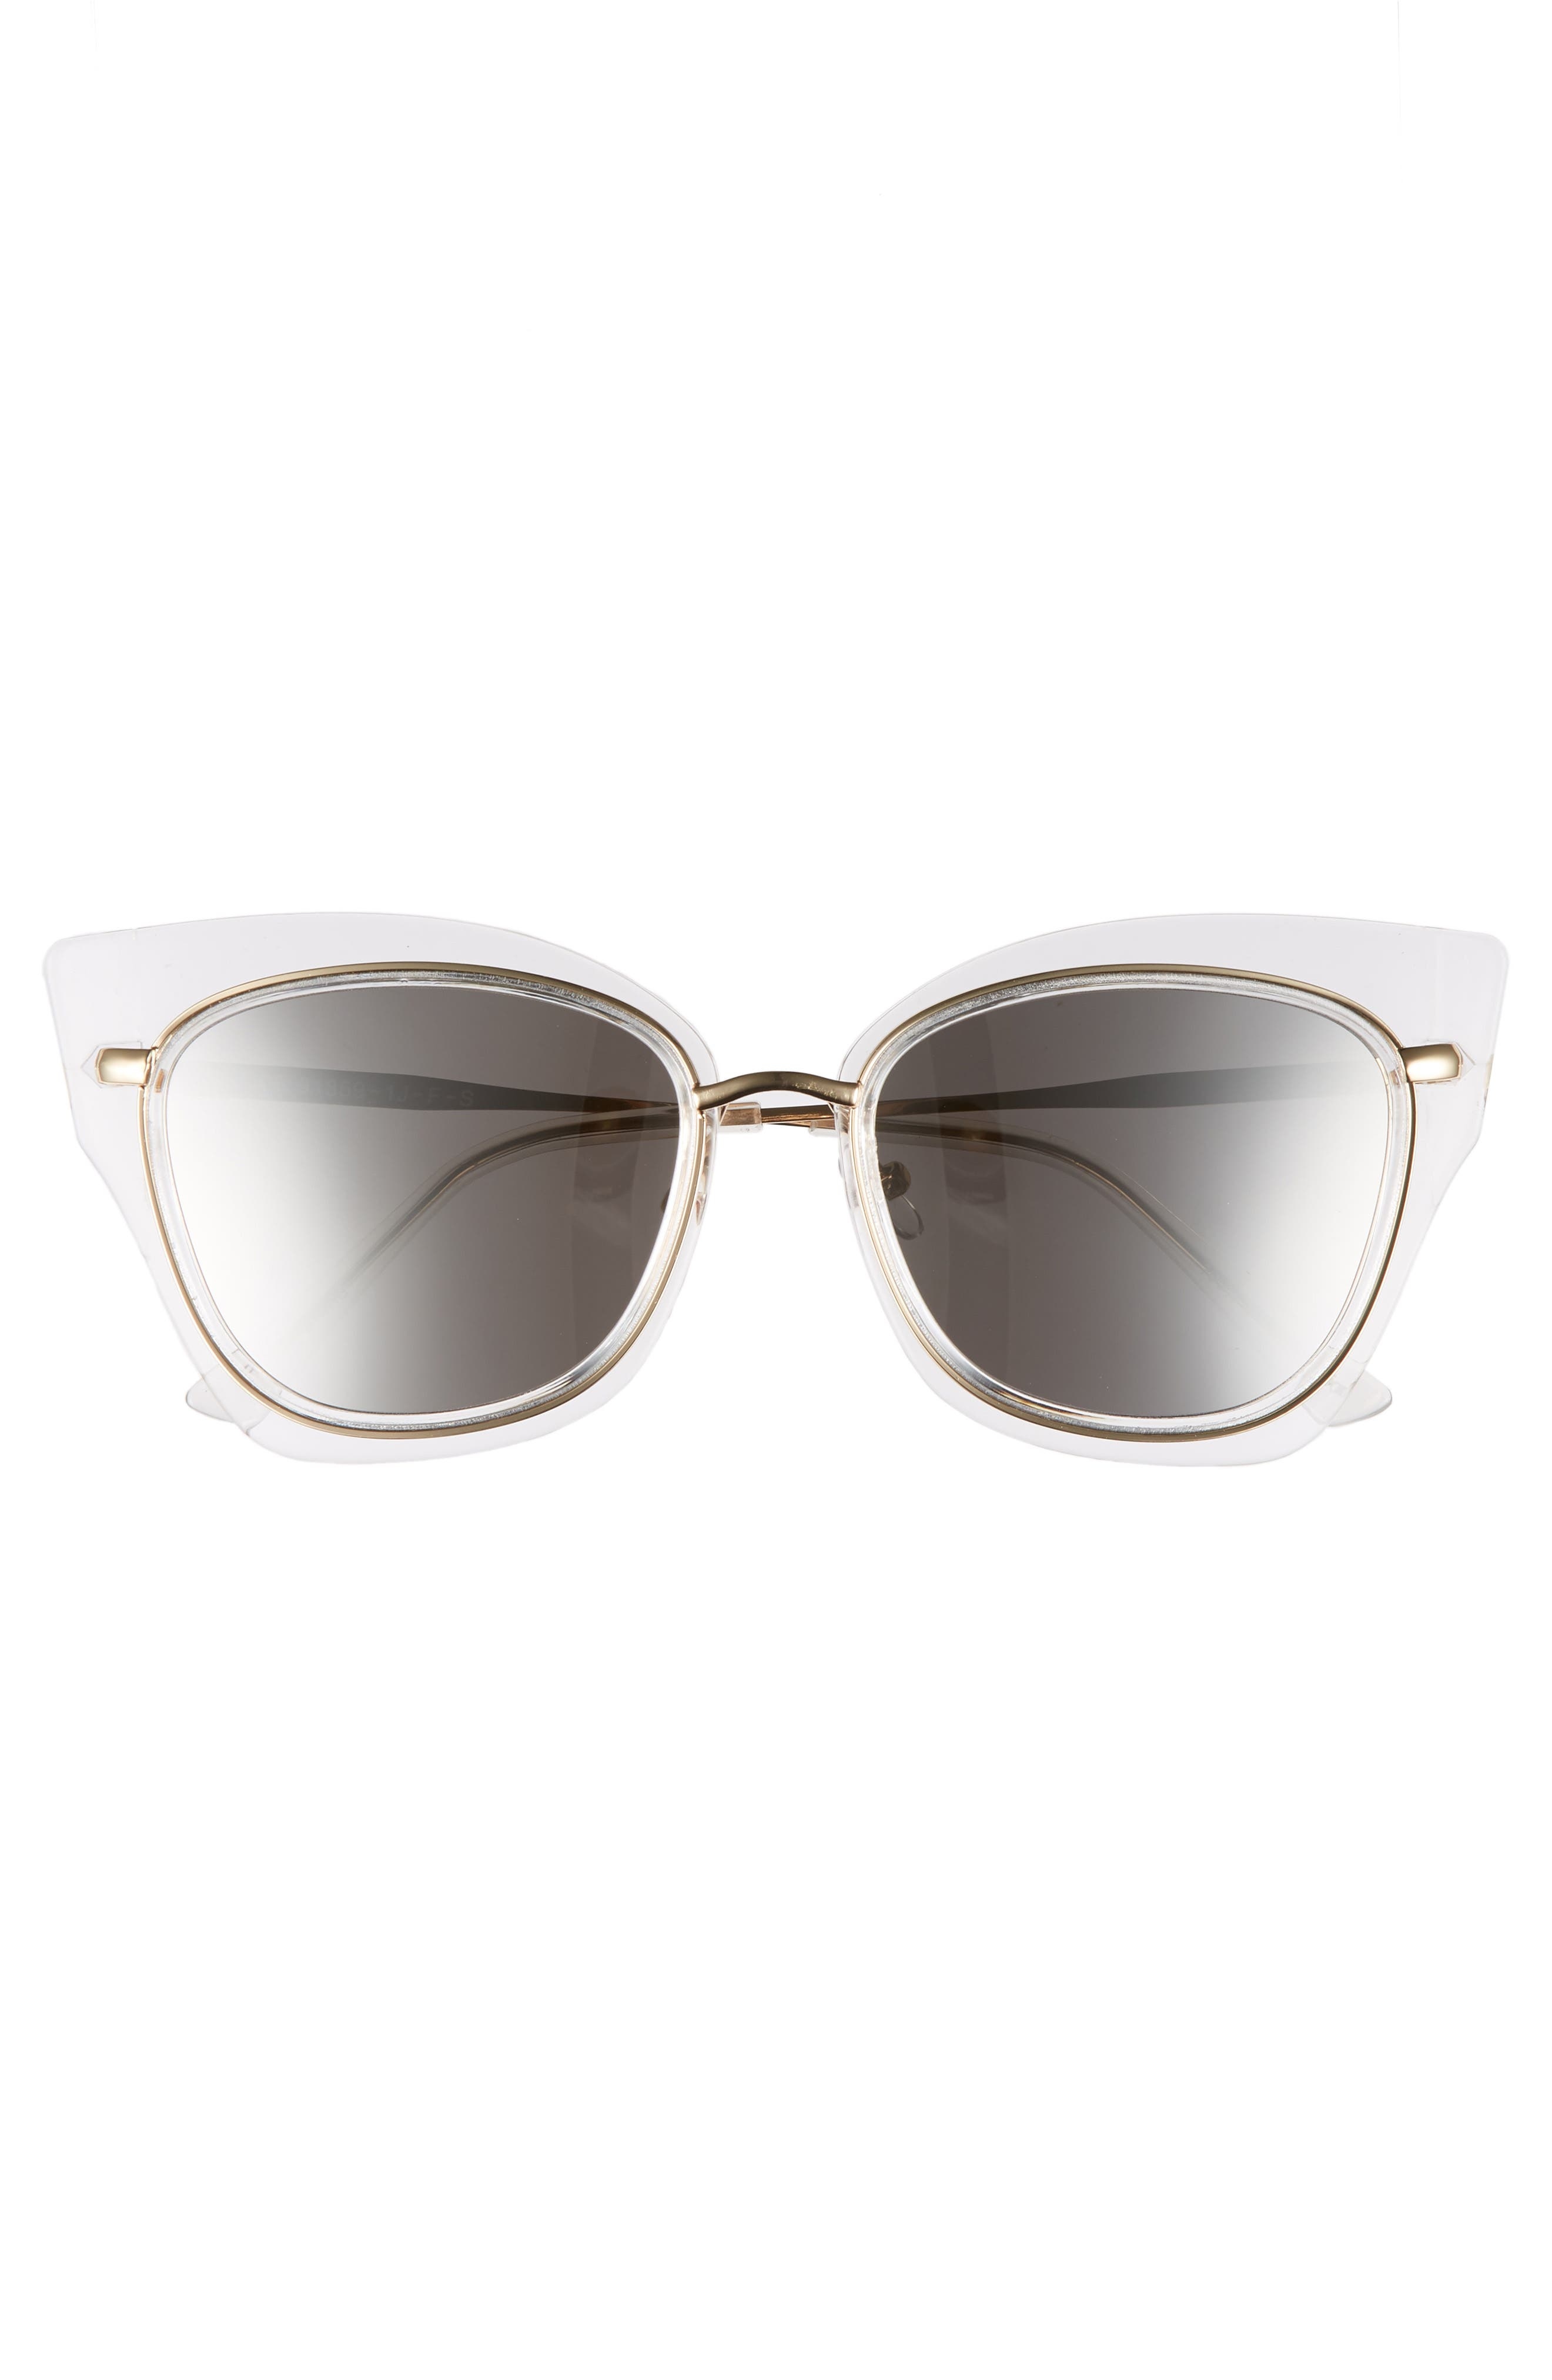 55mm Clear Winged Cat Eye Sunglasses,                             Alternate thumbnail 3, color,                             CLEAR/ GOLD